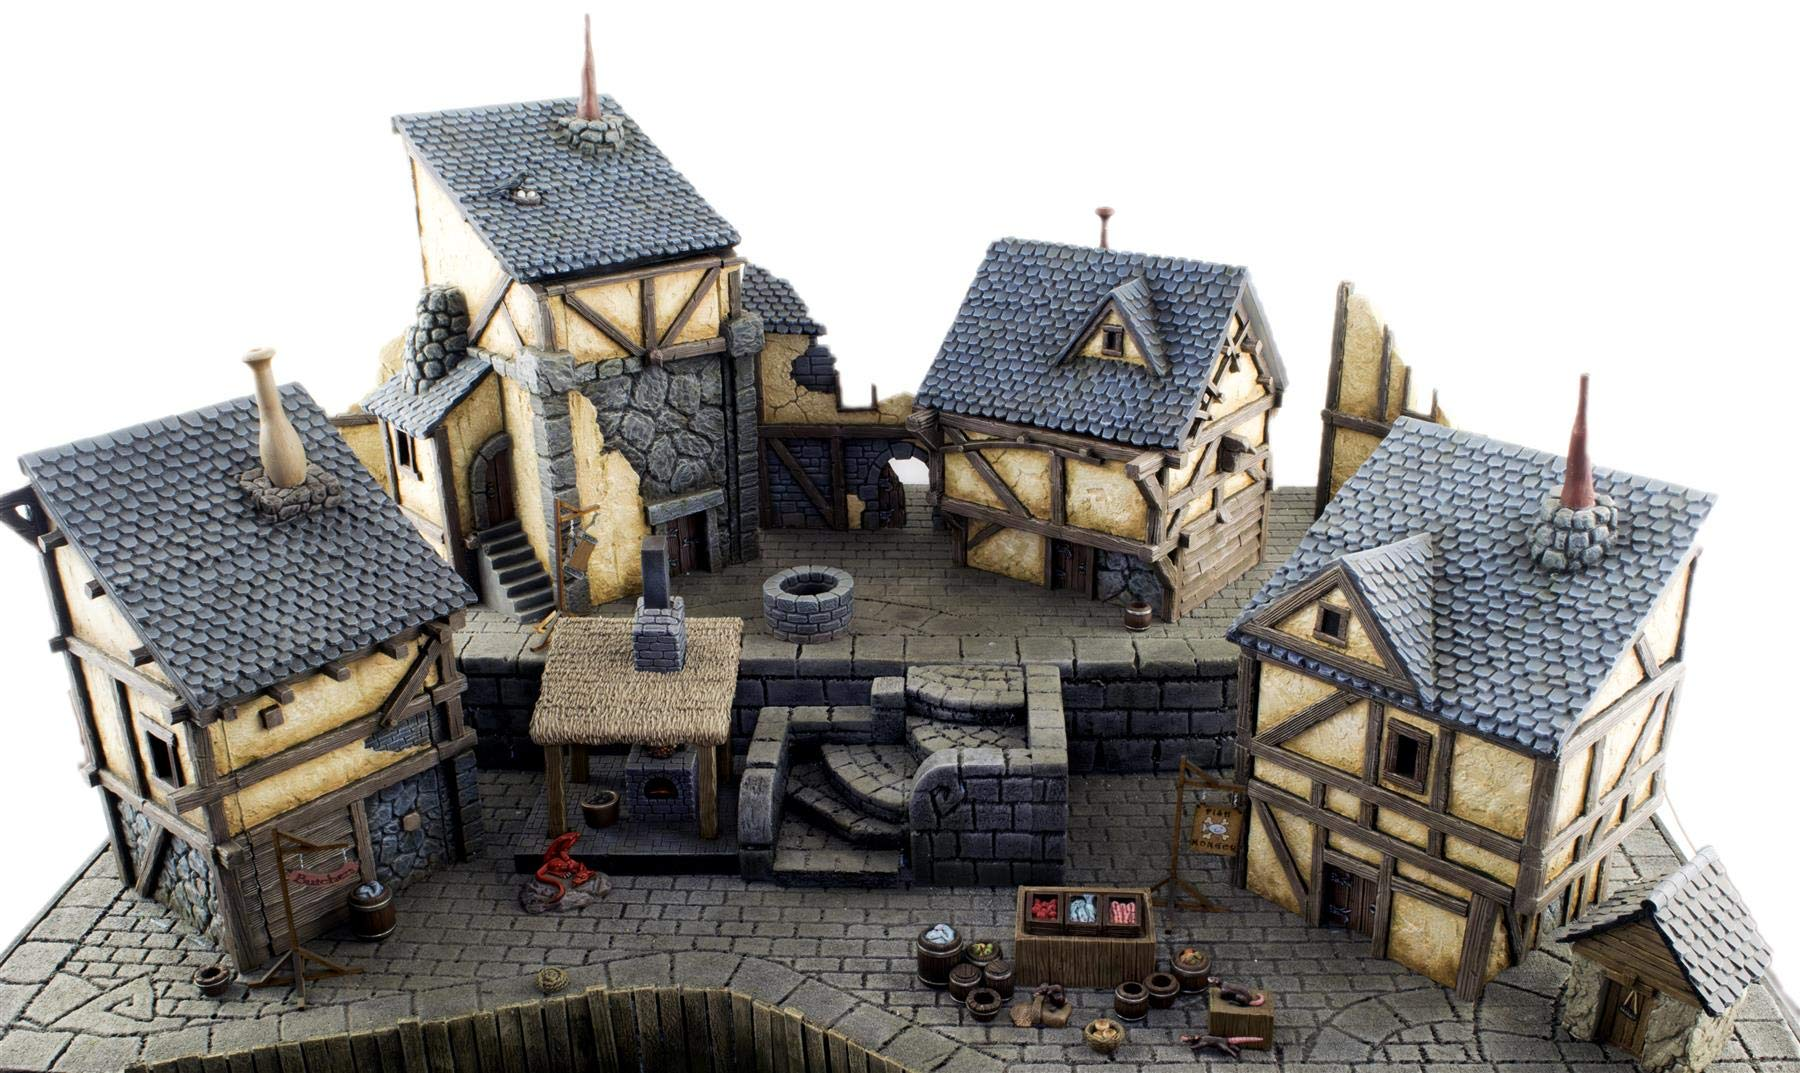 War World Gaming Complete Fantasy Village – 28mm Medieval Wargaming Terrain Model Scenery